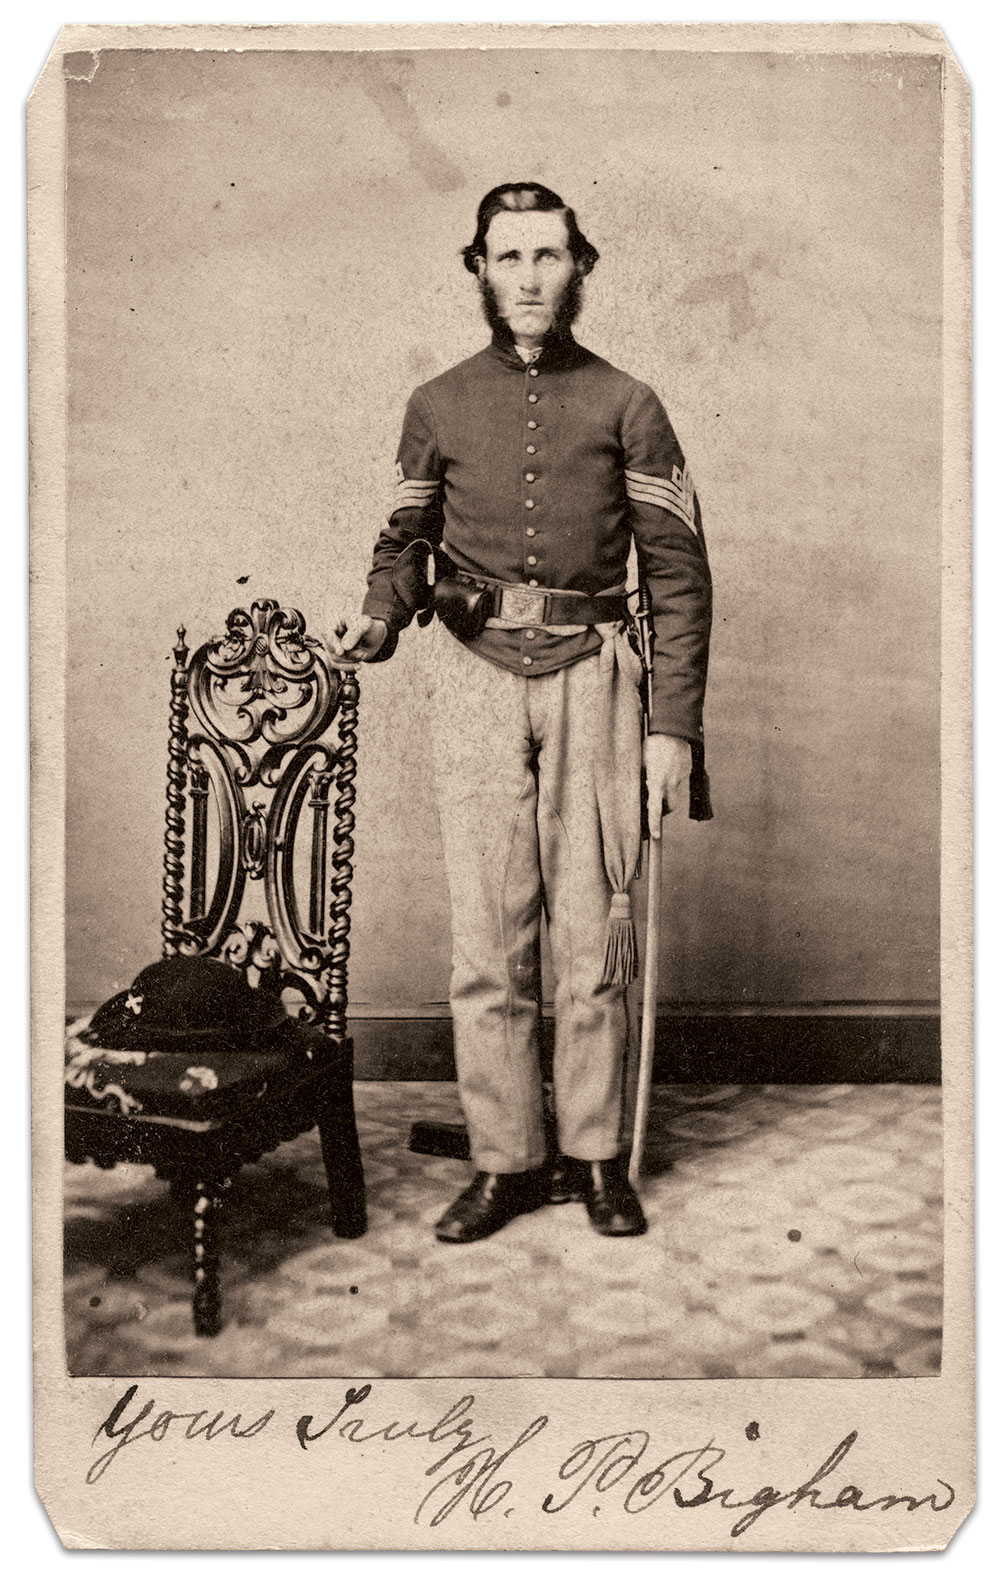 Bigham, pictured as a first sergeant. Carte de visite by Tyson Brothers of Gettysburg, Pa. Author's Collection.